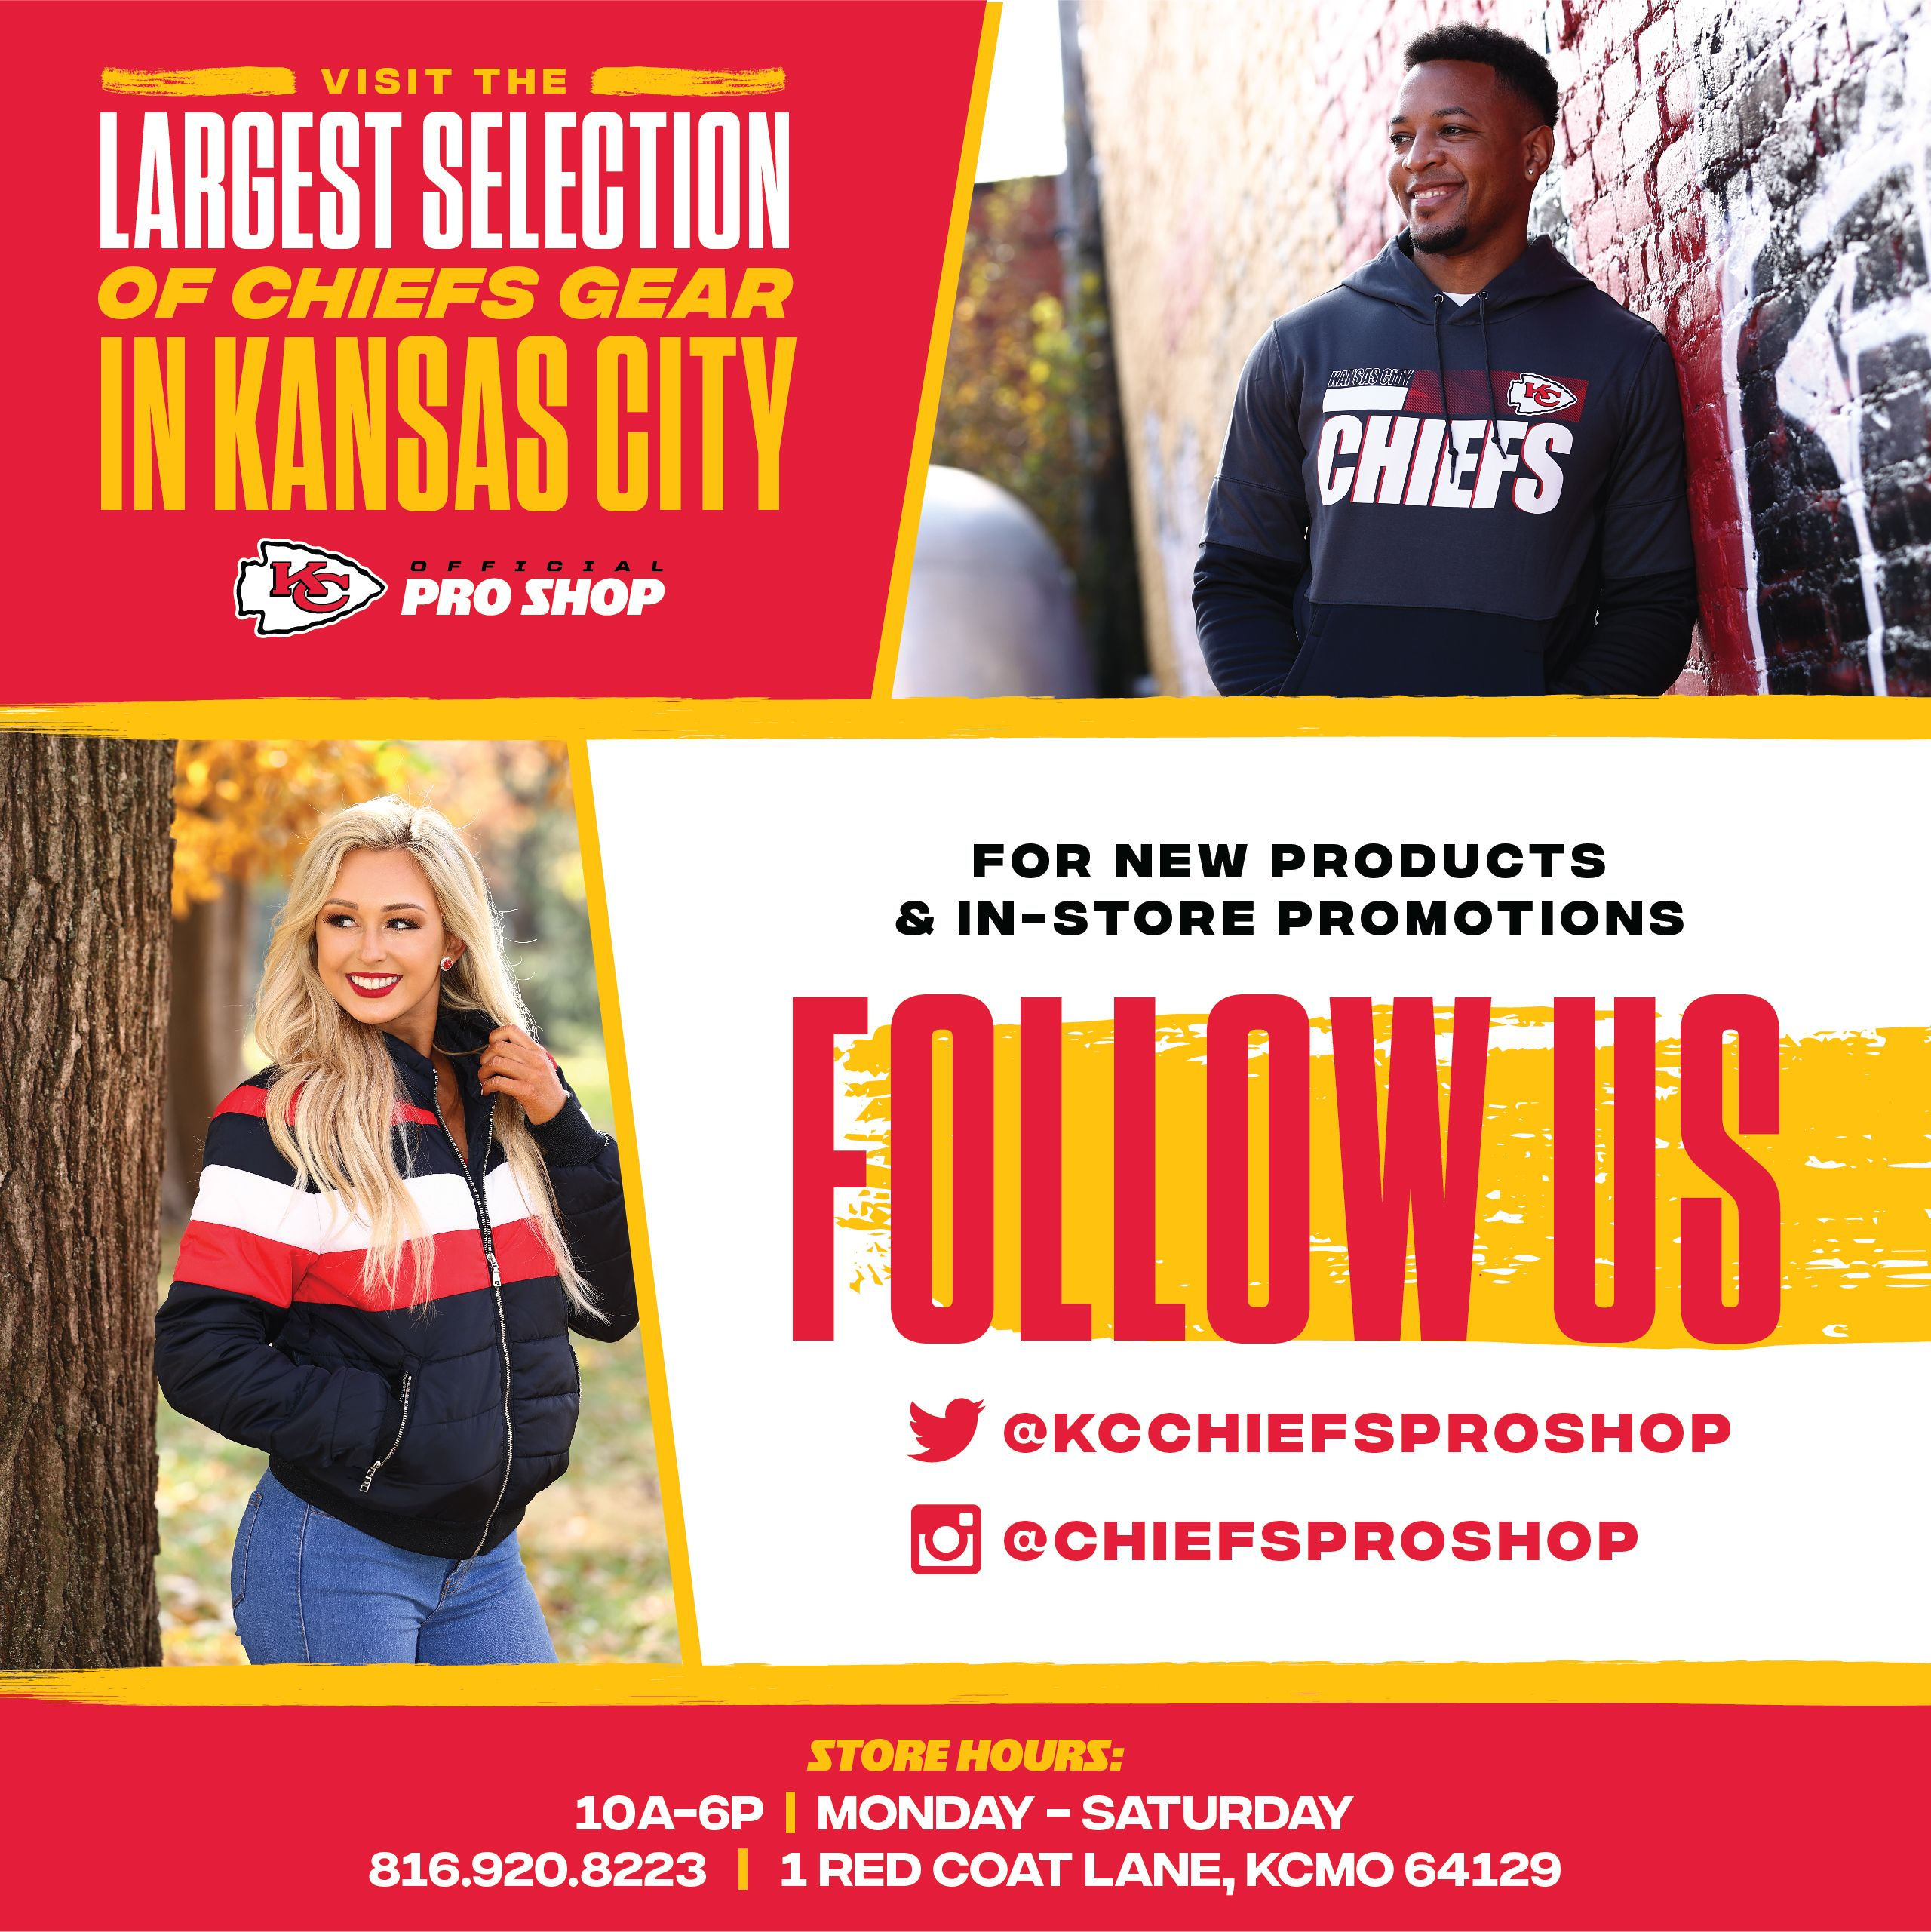 Click here to view Chiefs Pro Shop Twitter account.